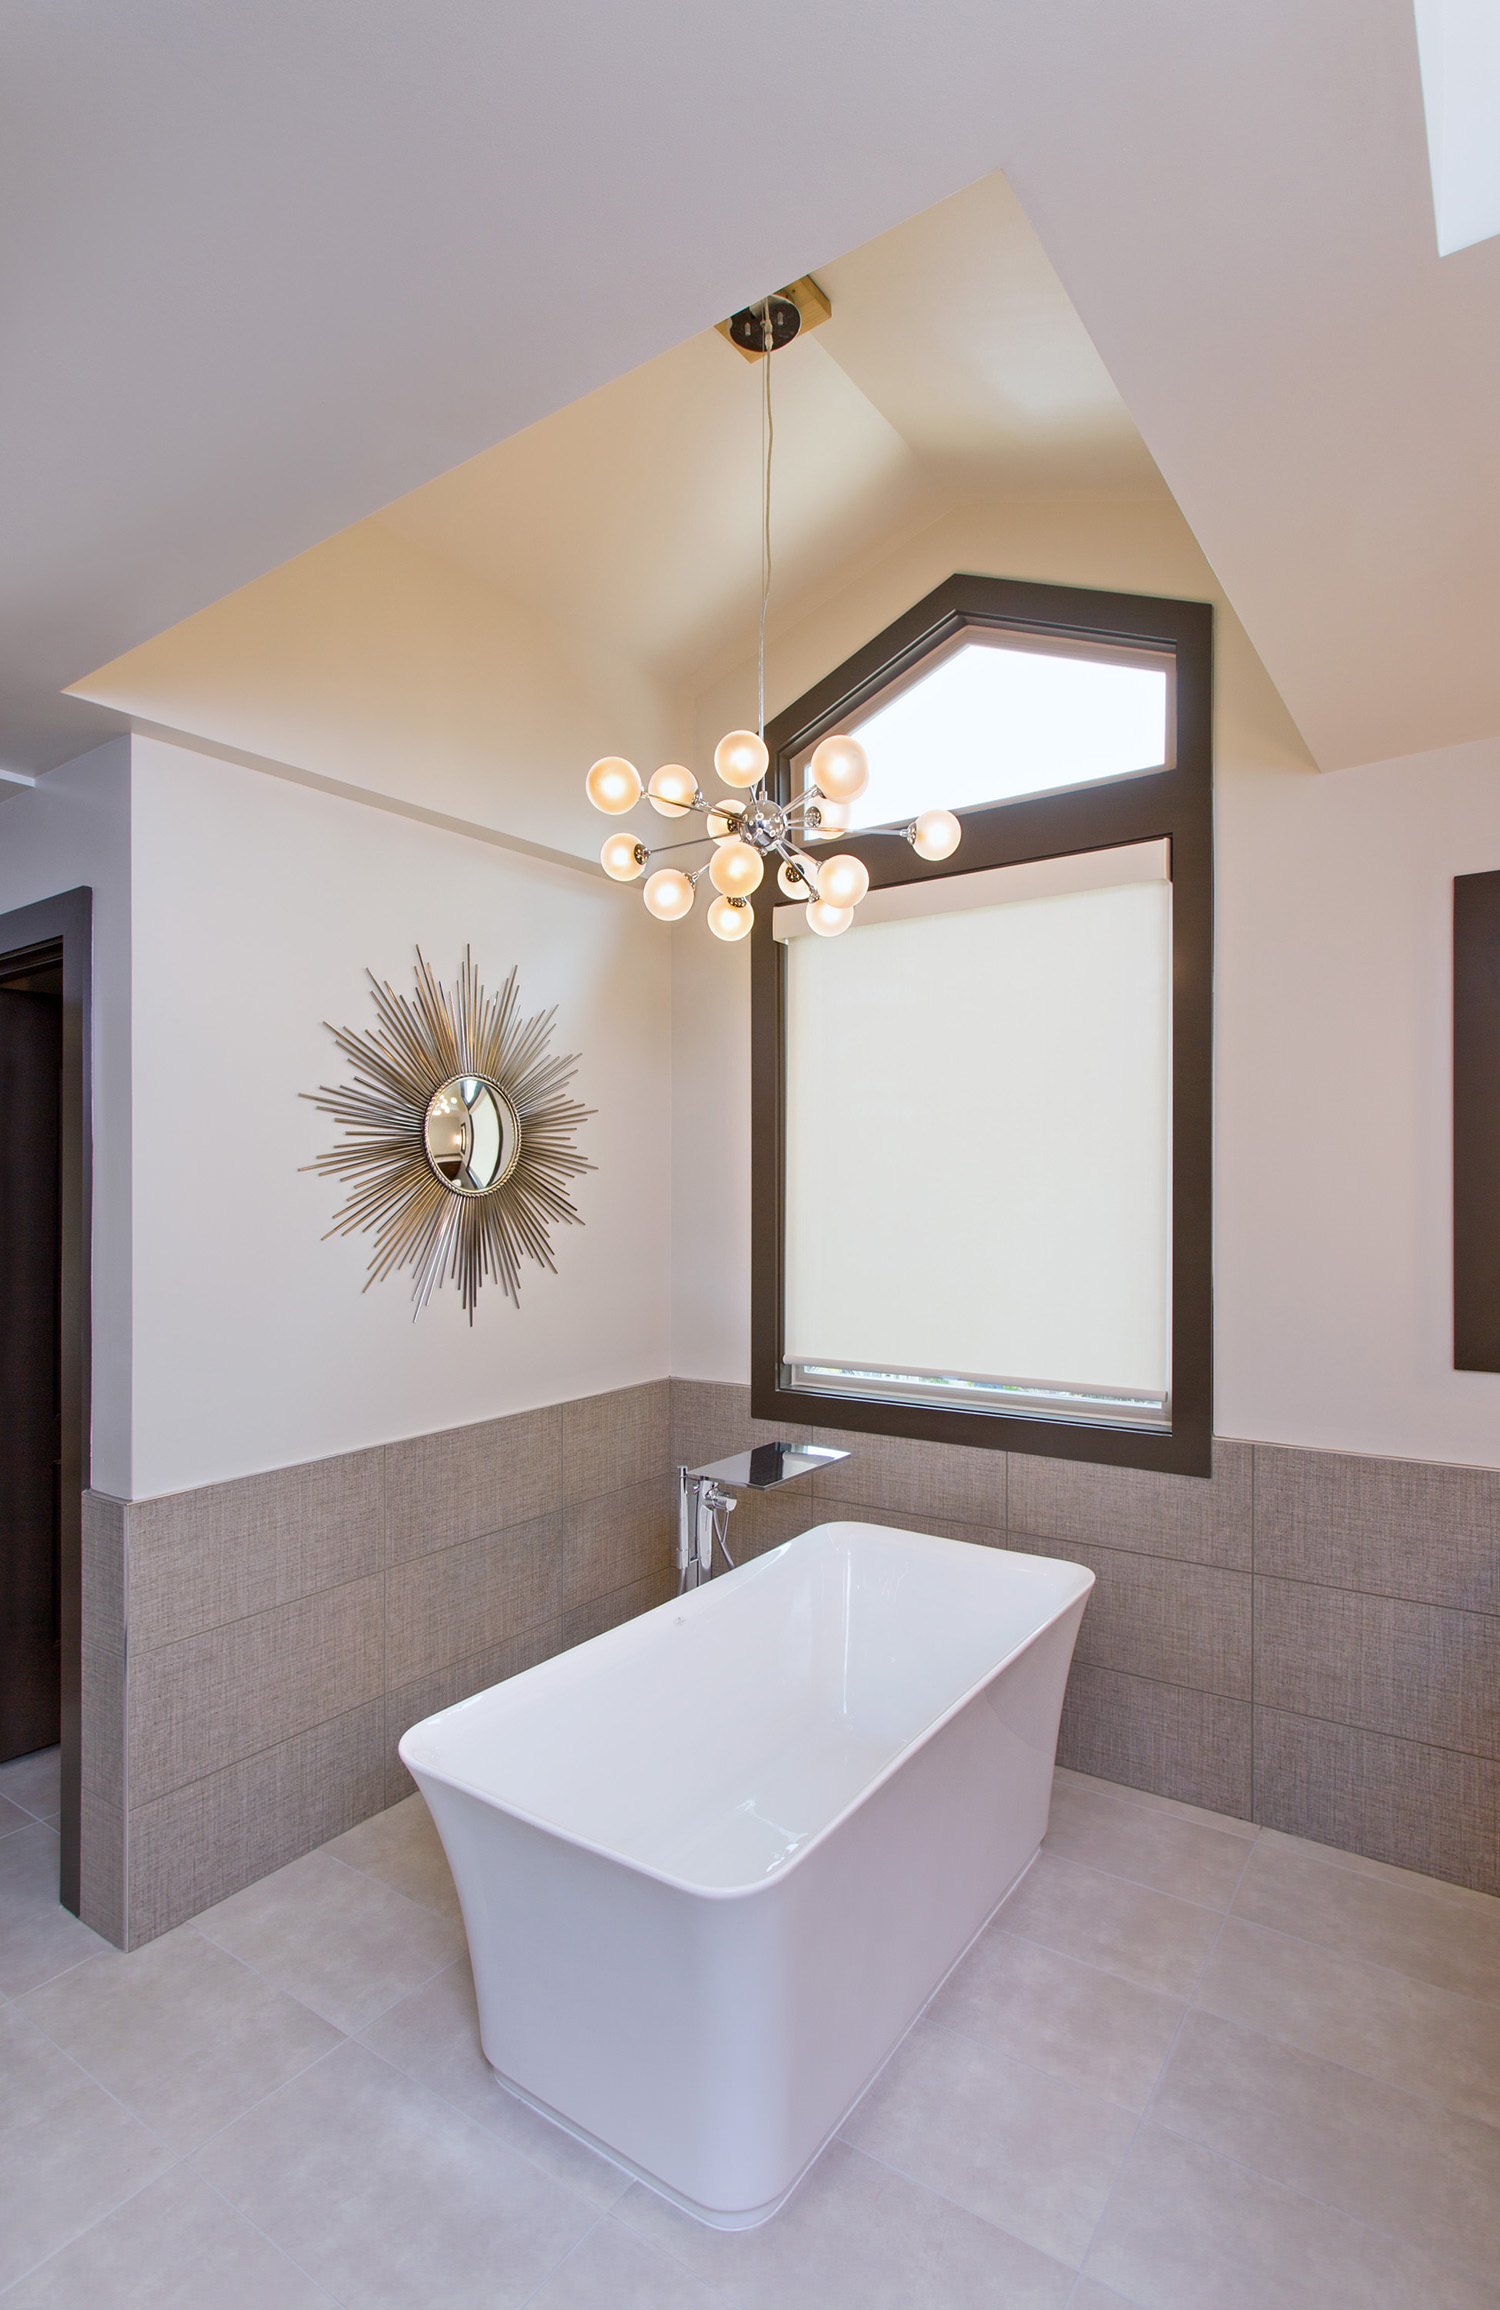 bathroom-interior-design-los-altos-california-ktj-design-co-14.jpg